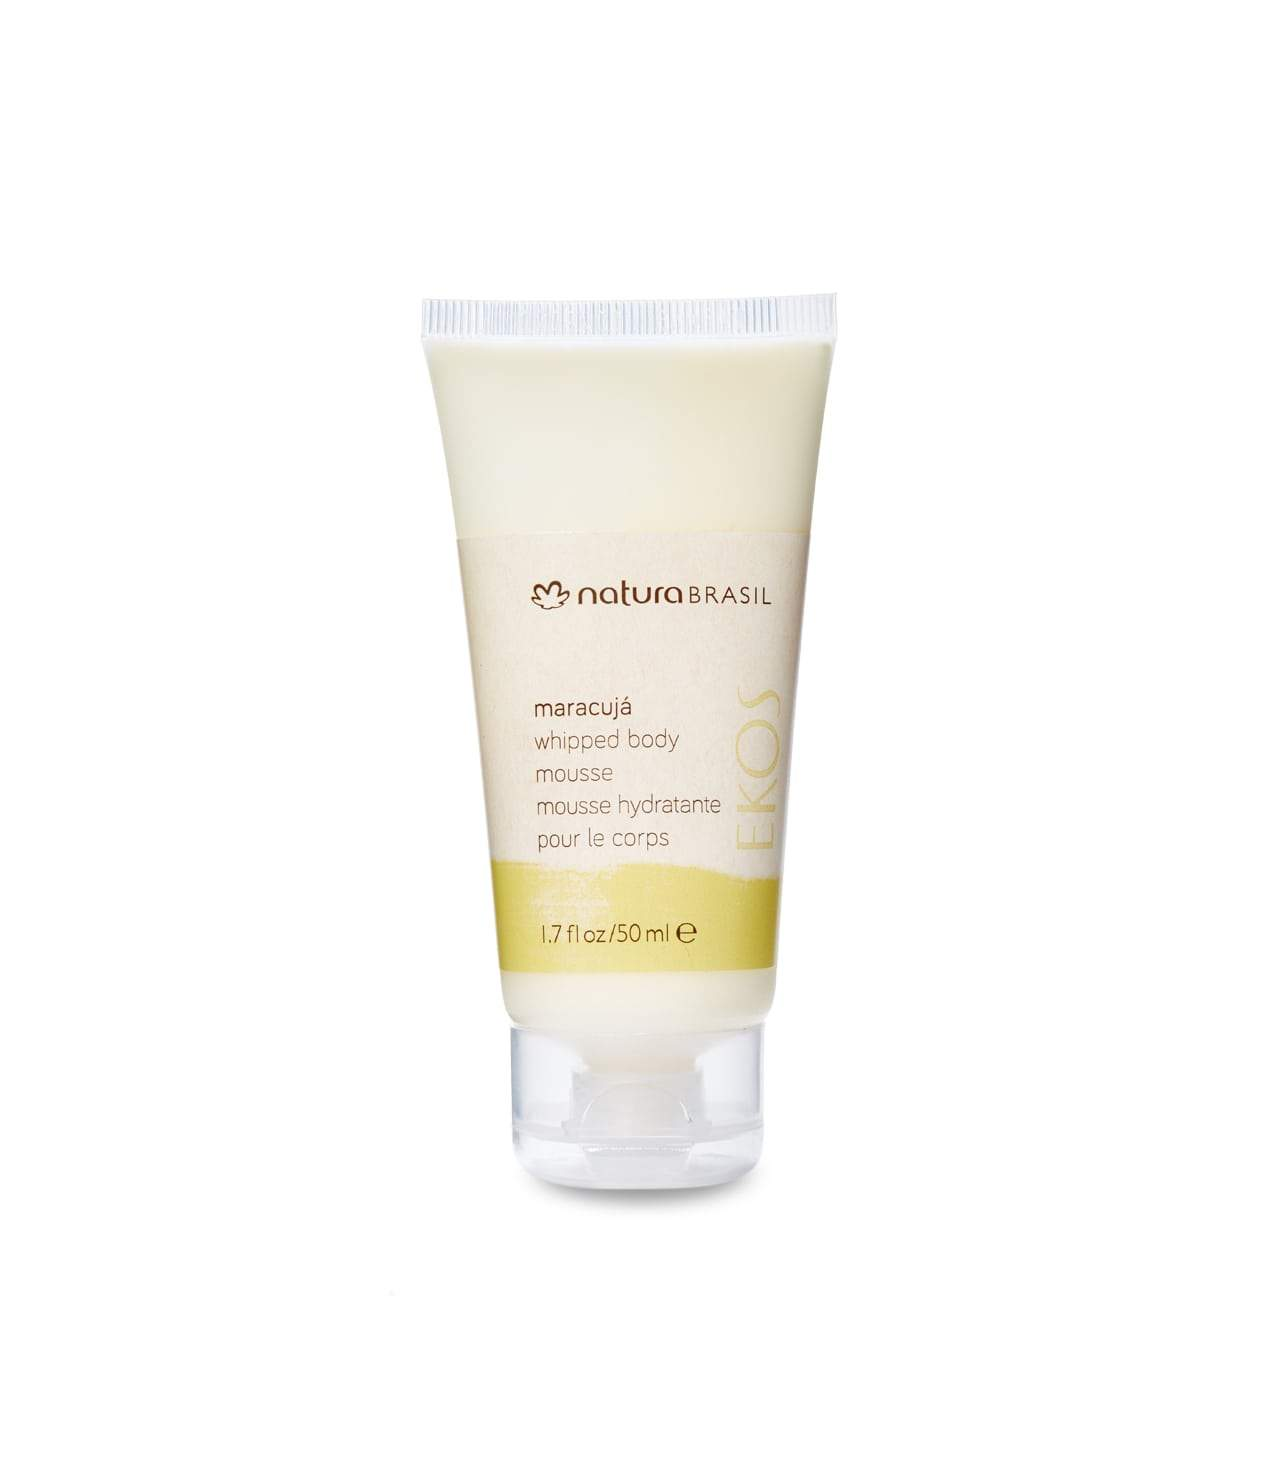 Maracuja Whipped Body Mousse _mobile - 1.7oz / 50g